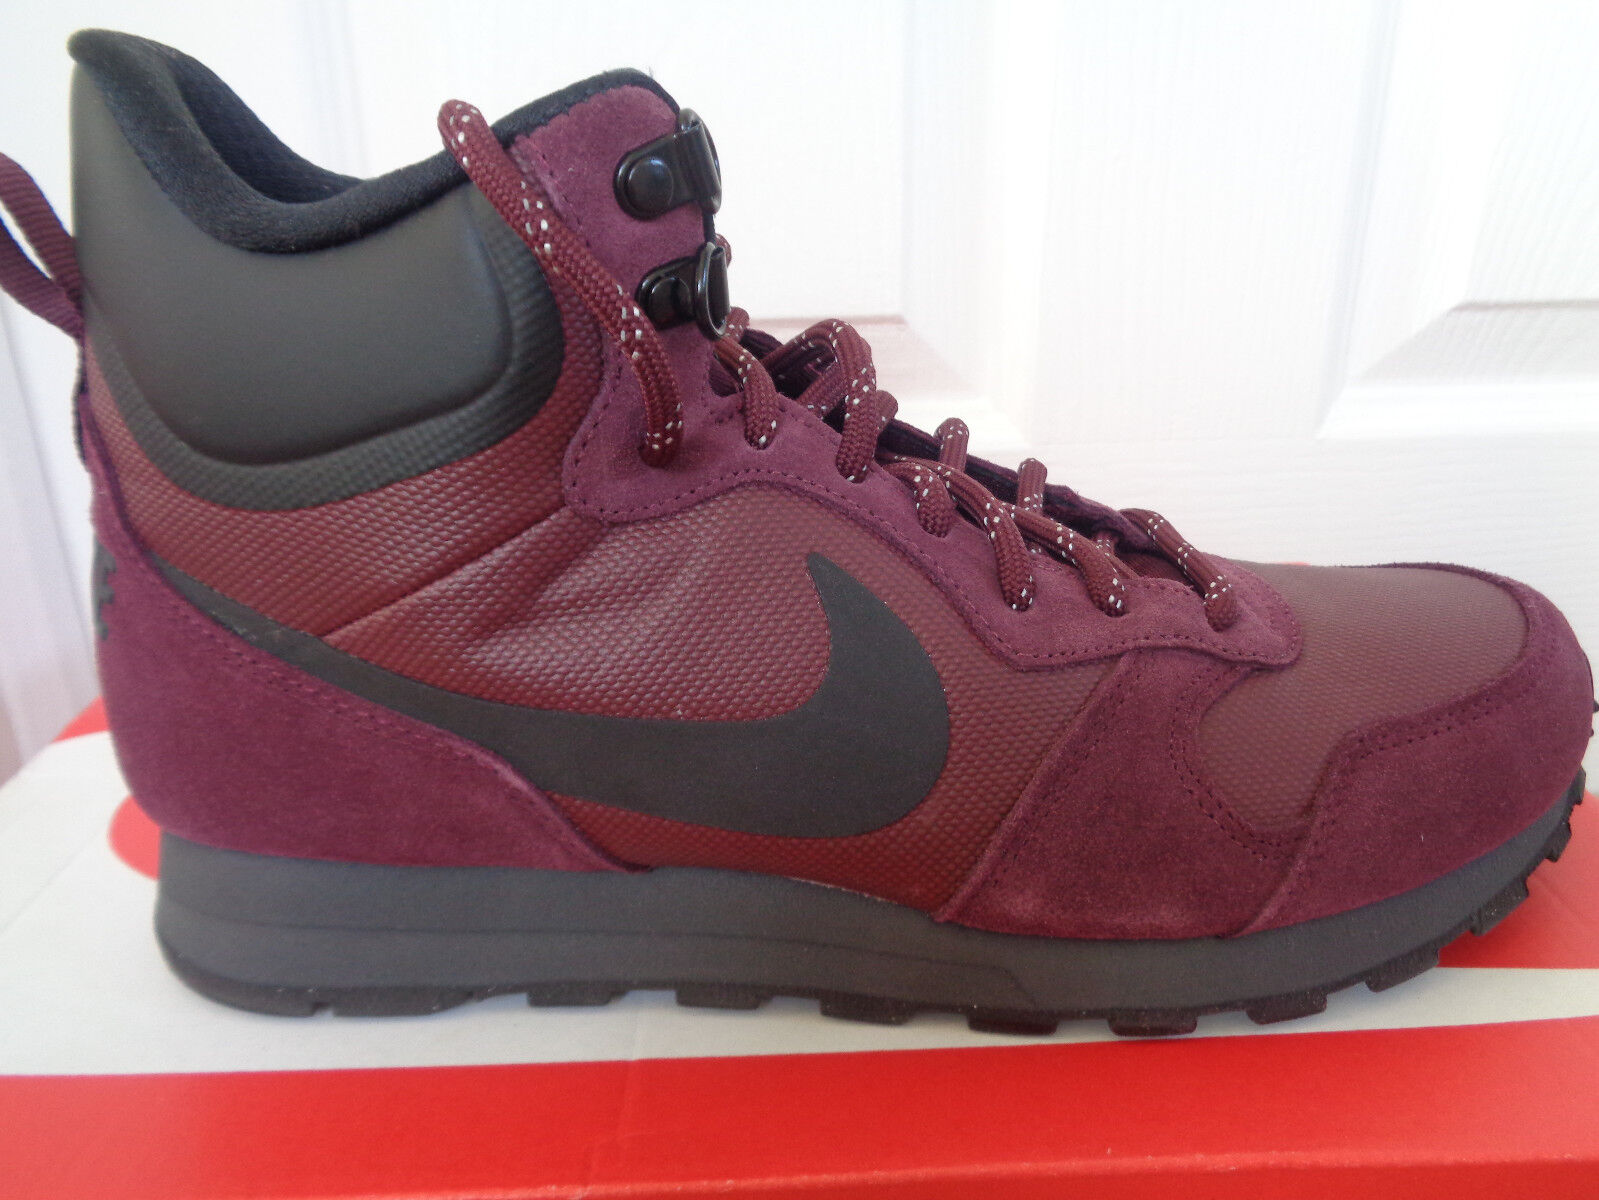 Nike MD Runner trainers 2 Mid Prem Donna trainers Runner 845059 600 uk 7 eu 41 us 9.5 NEW+BOX 31f73e